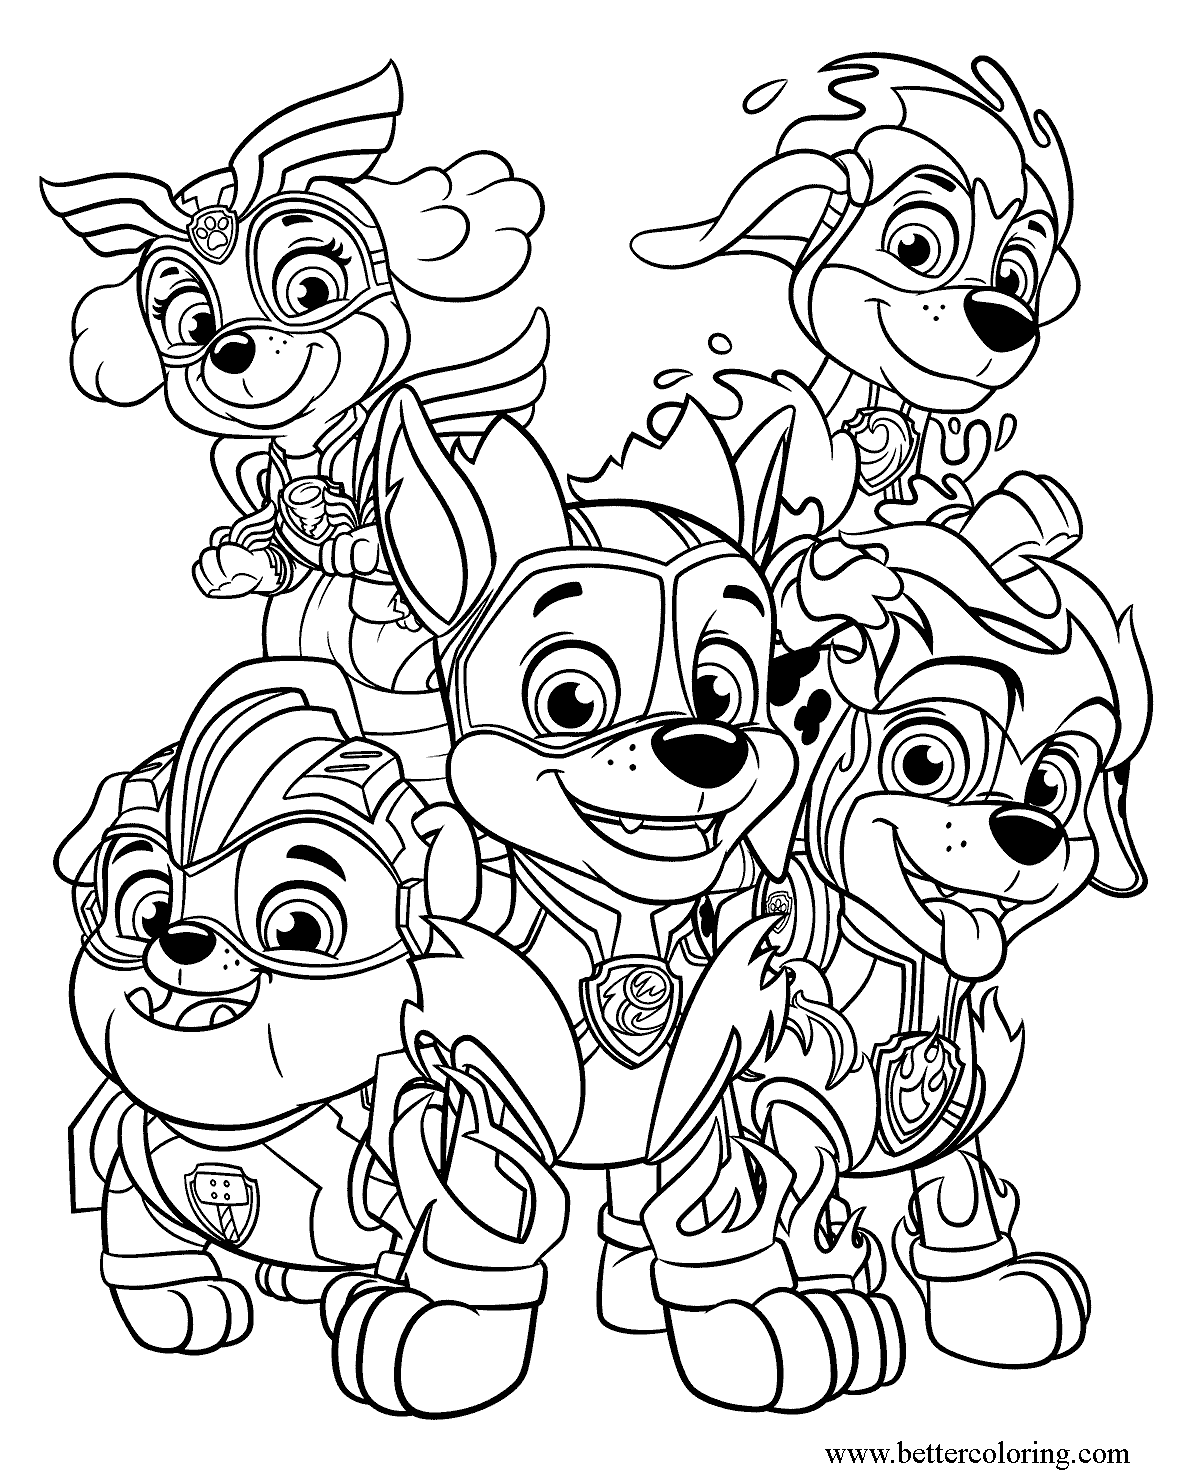 Mighty Pups Coloring Page